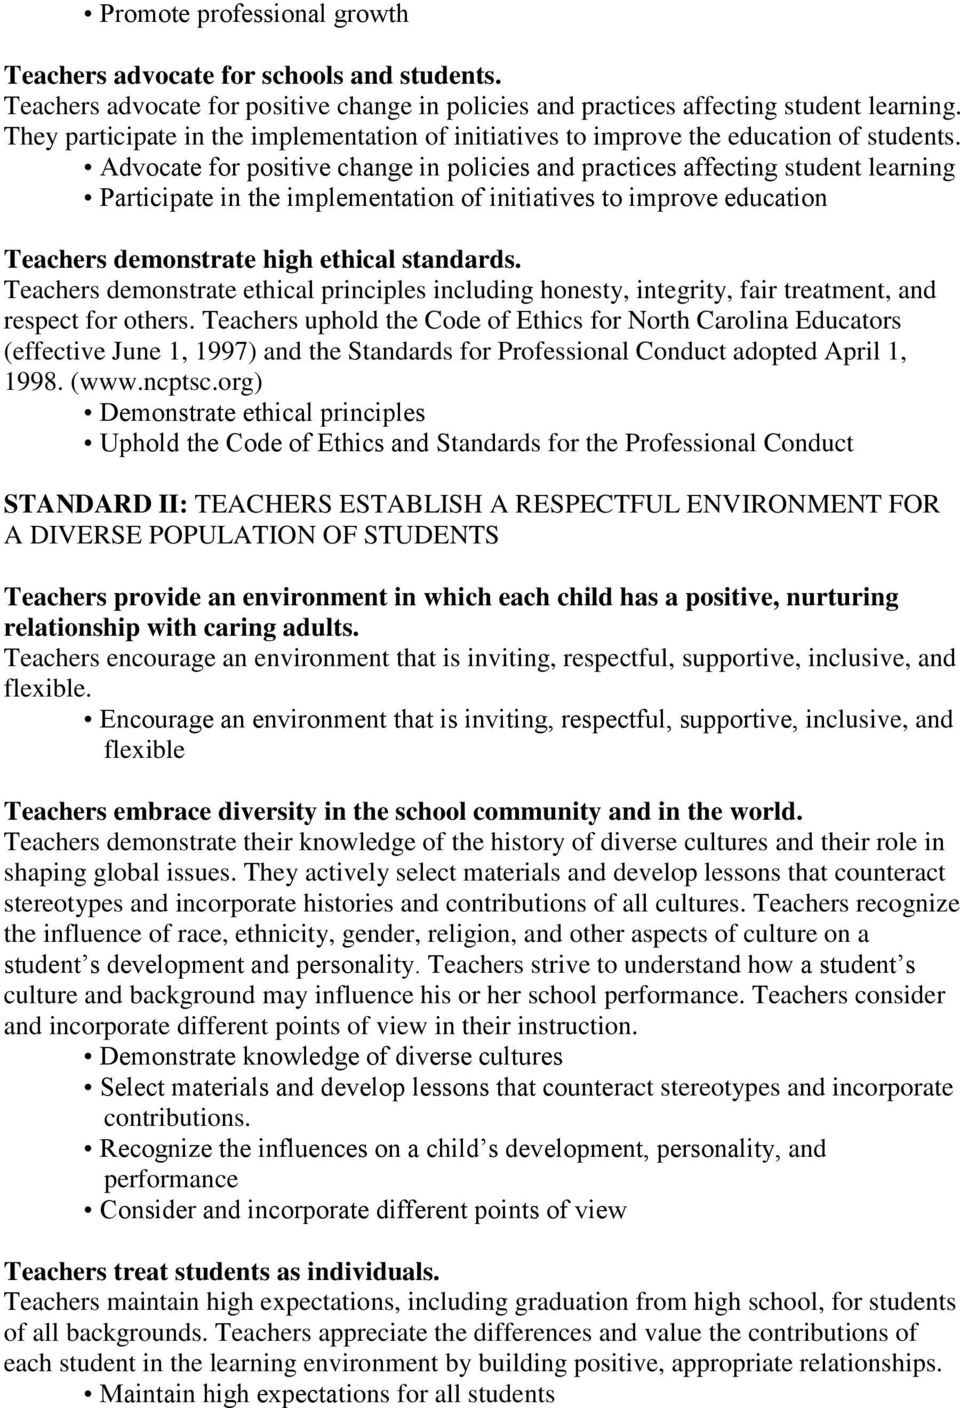 Advocate for positive change in policies and practices affecting student learning Participate in the implementation of initiatives to improve education Teachers demonstrate high ethical standards.